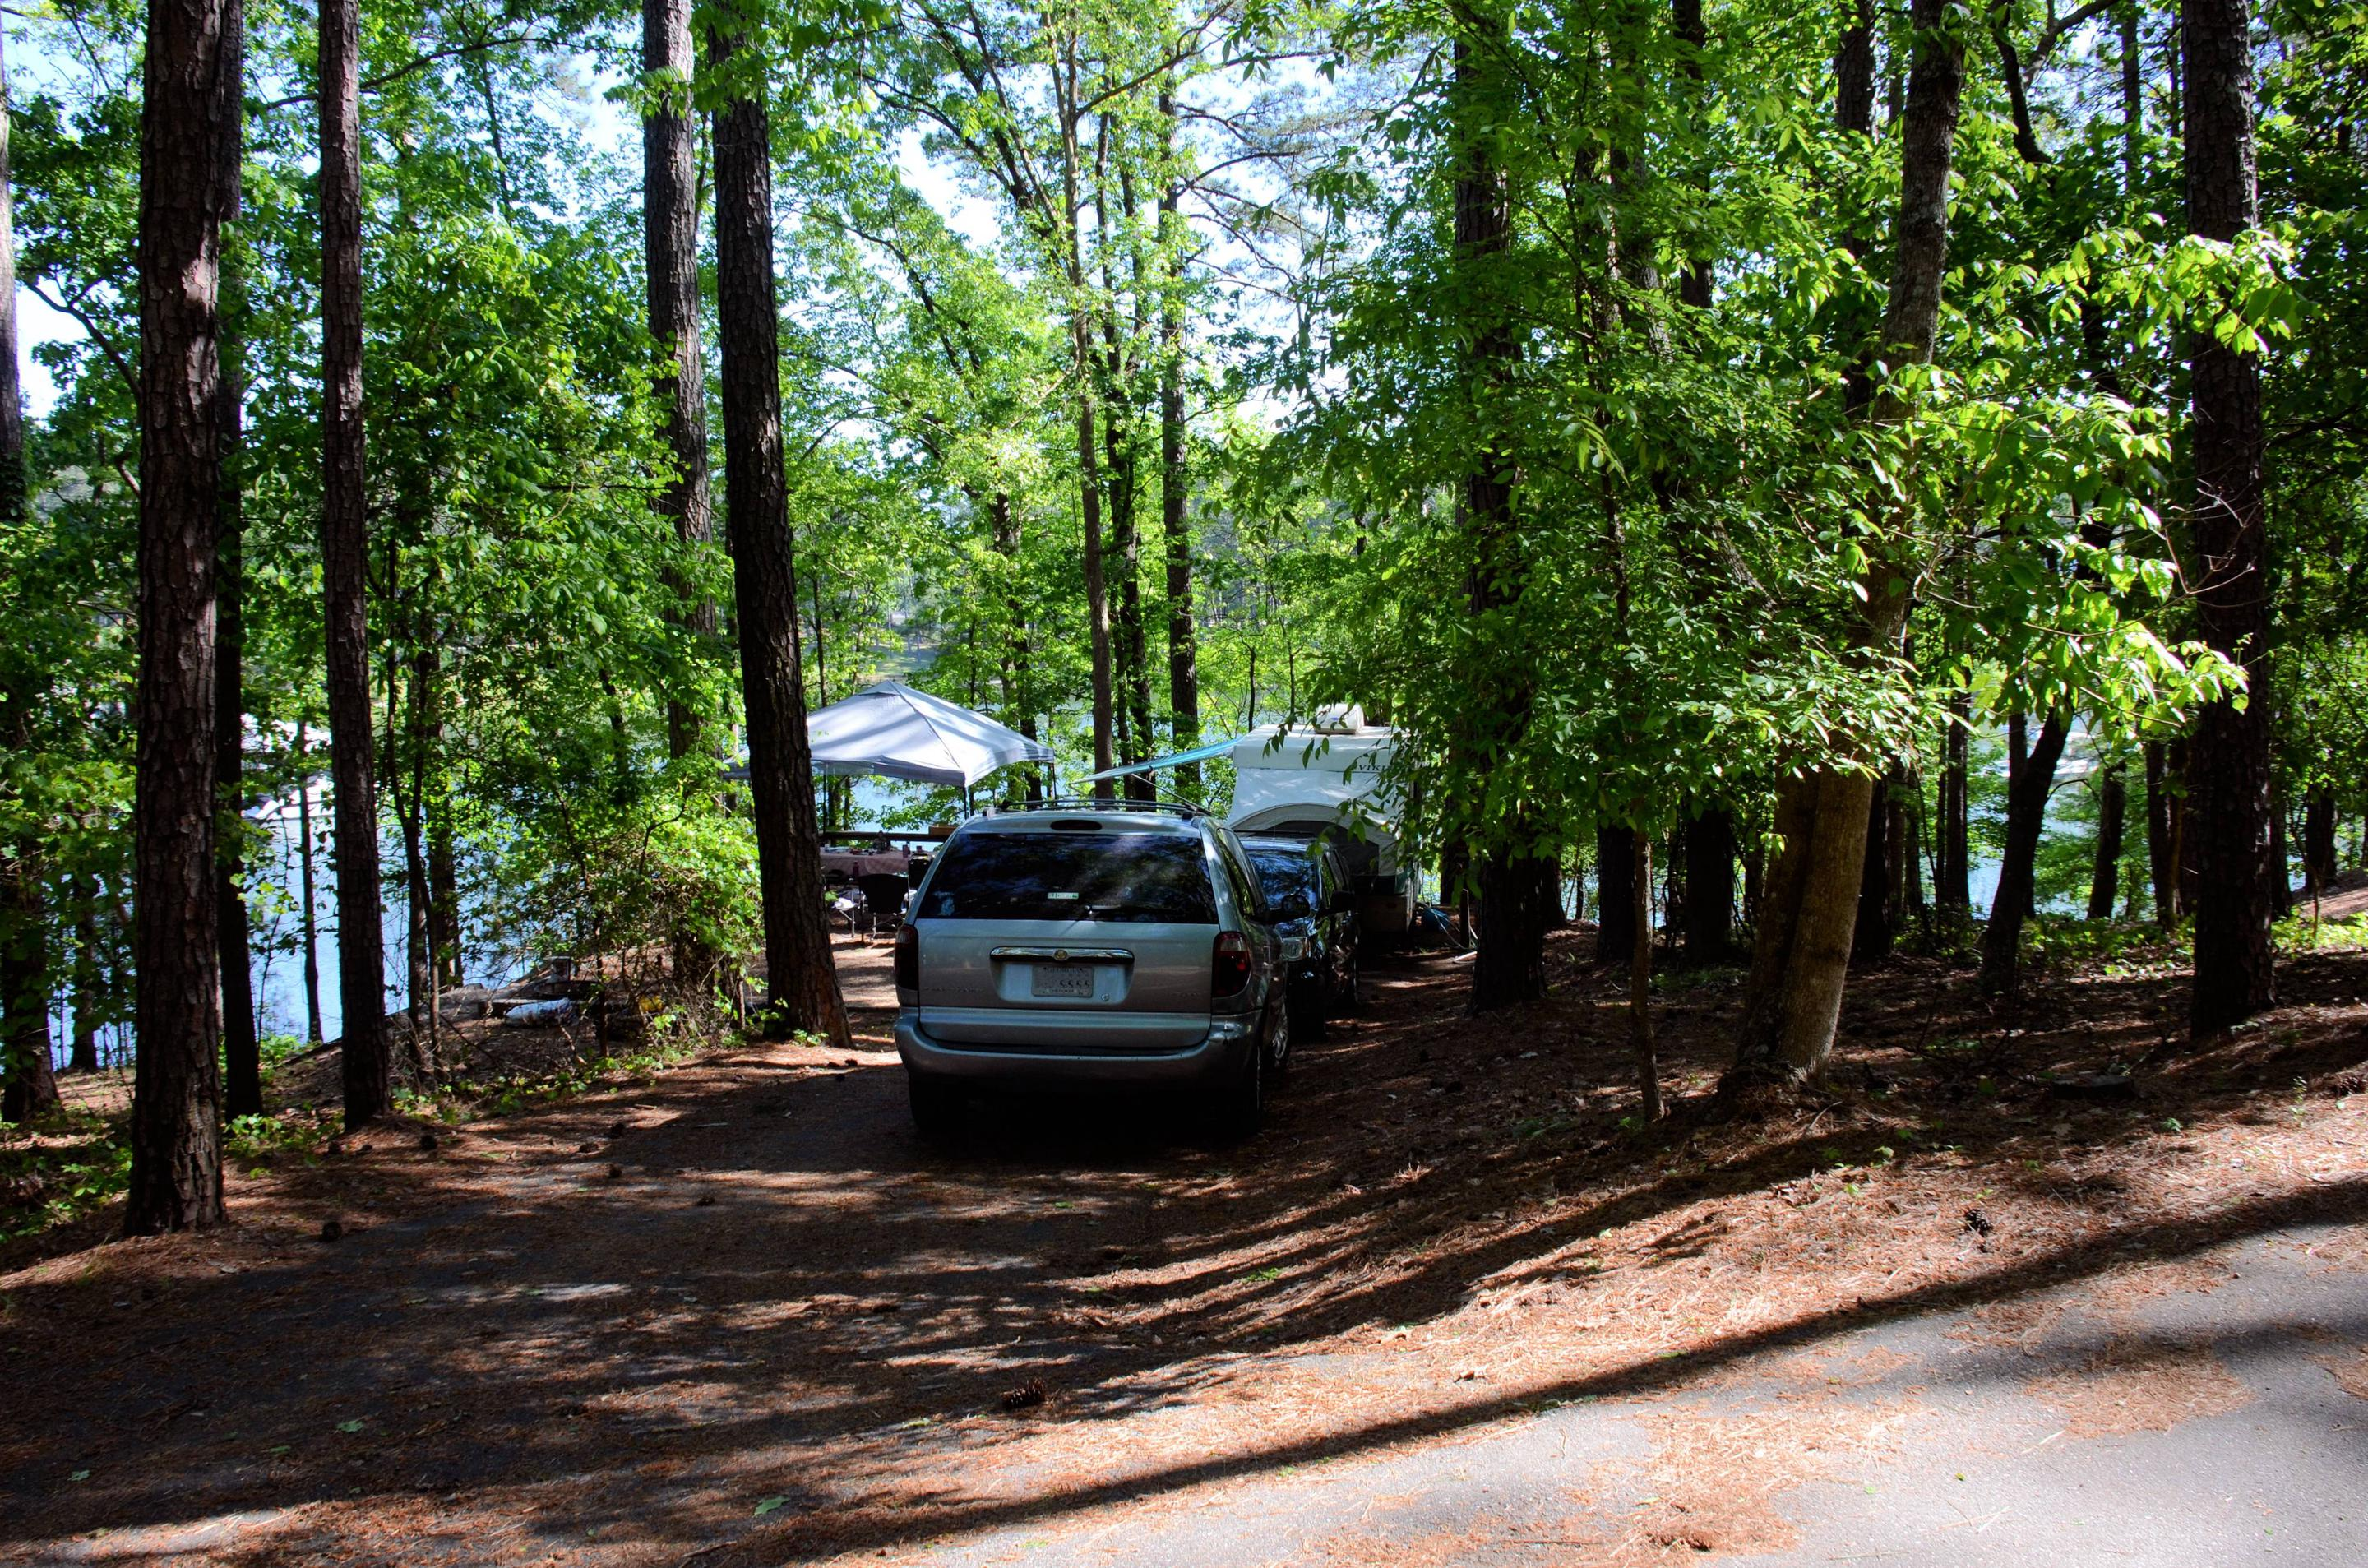 Driveway slope, utilities-side clearanceMcKinney Campground, campsite 21.